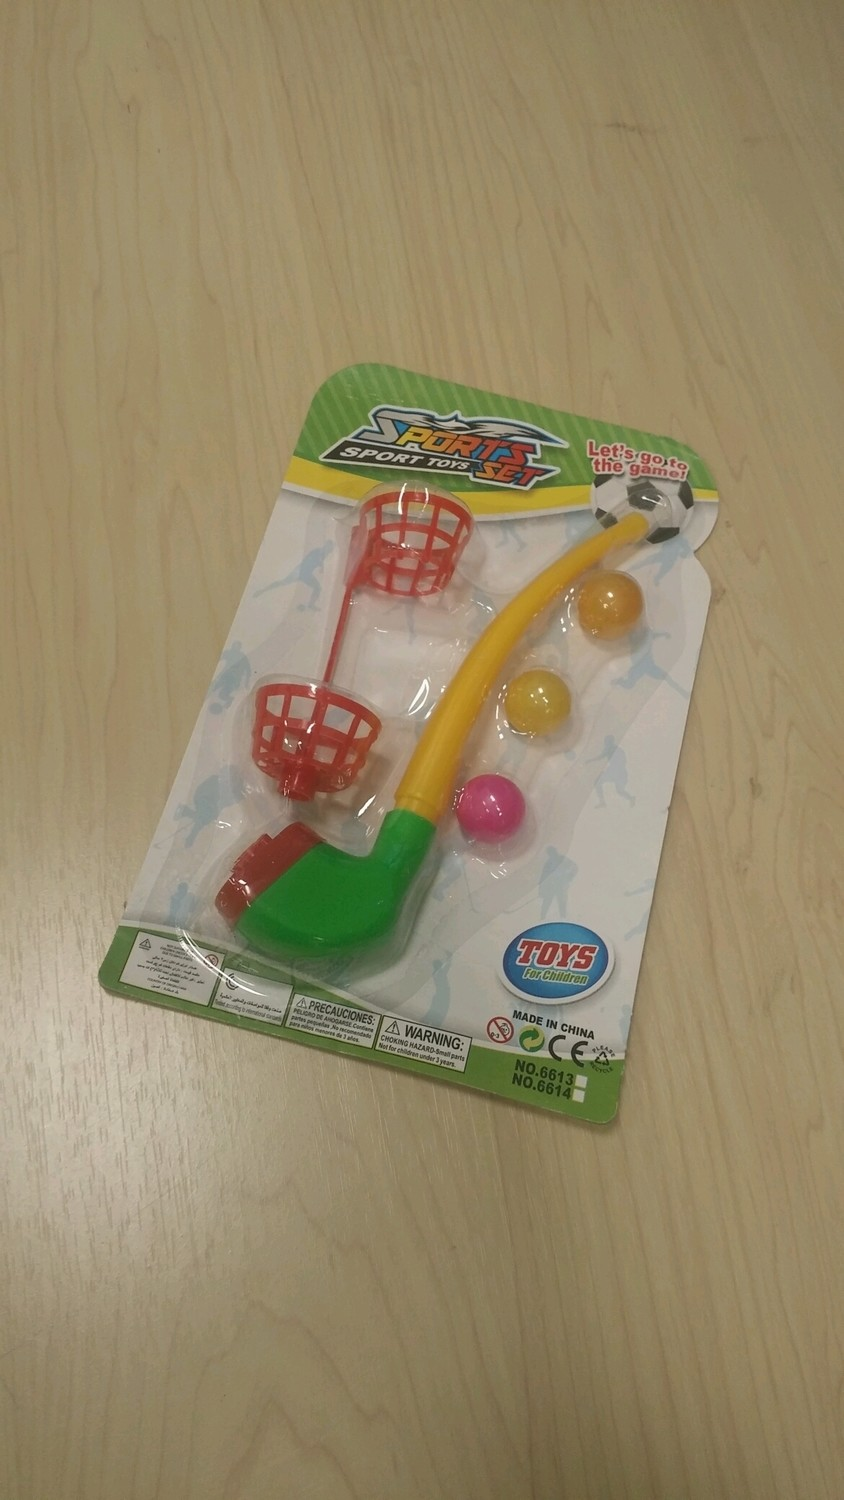 Double Basket Blow Pipe 雙籃吹管